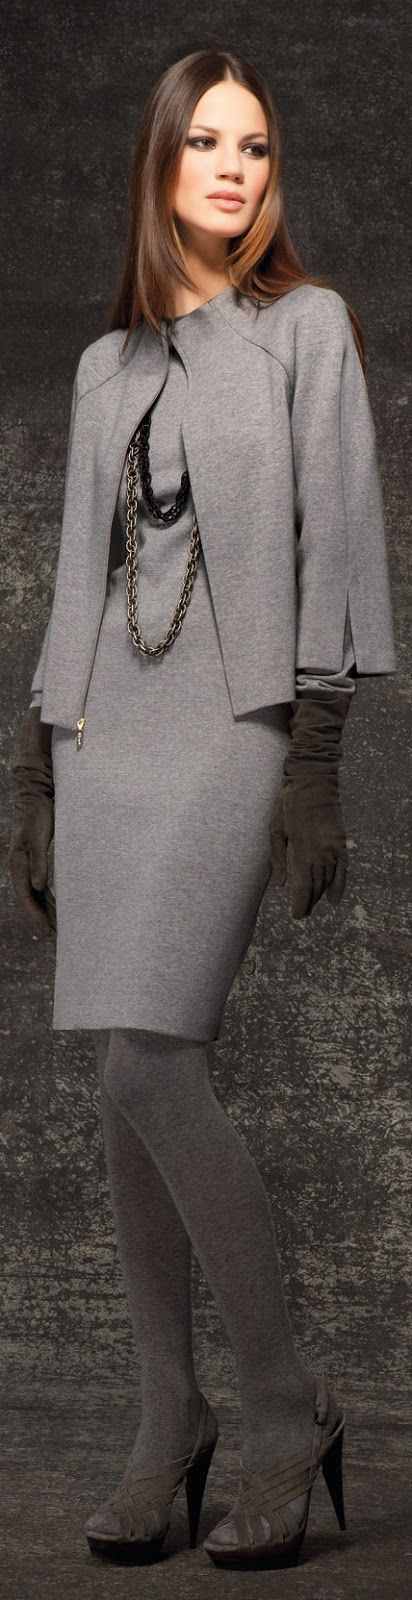 Curating Fashion & Style: Elegance - on sale womens clothing, clothing stores womens, womens casual clothing